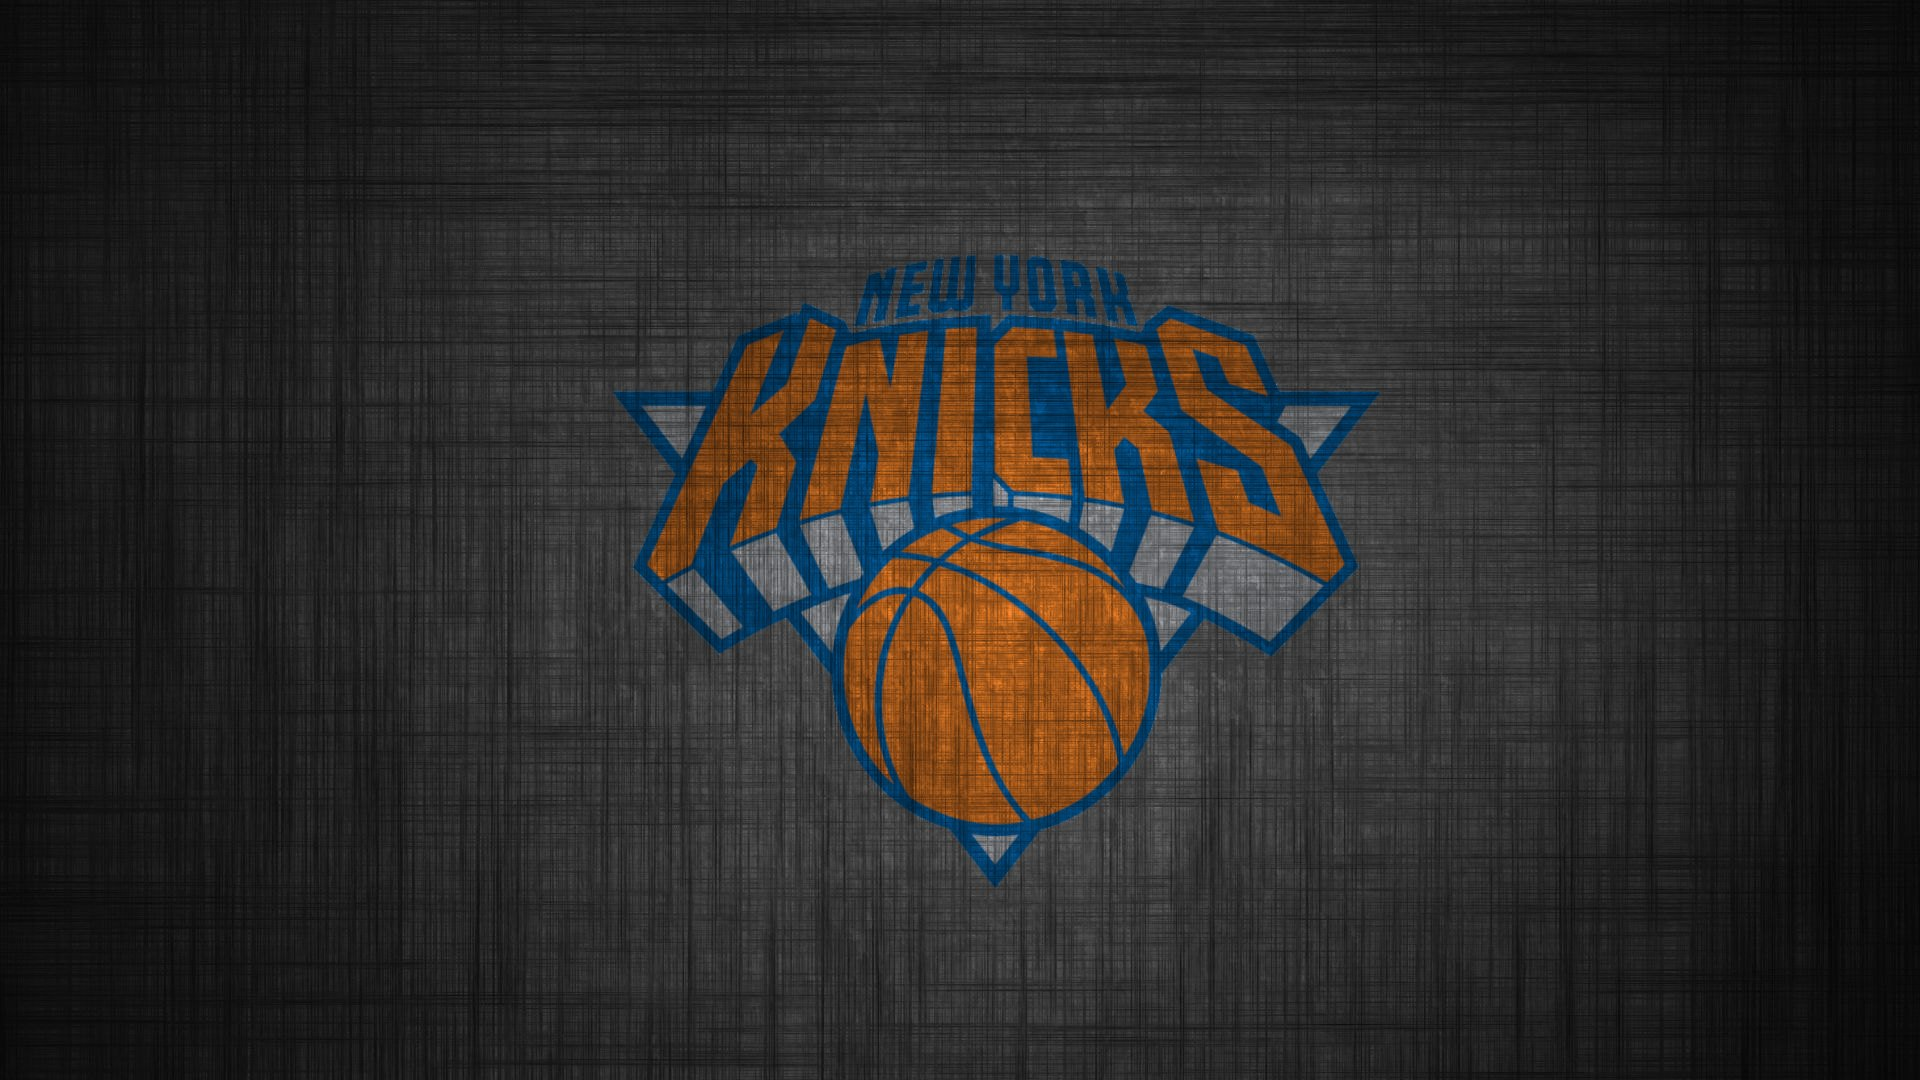 1920x1080 - New York Knicks Wallpapers 10